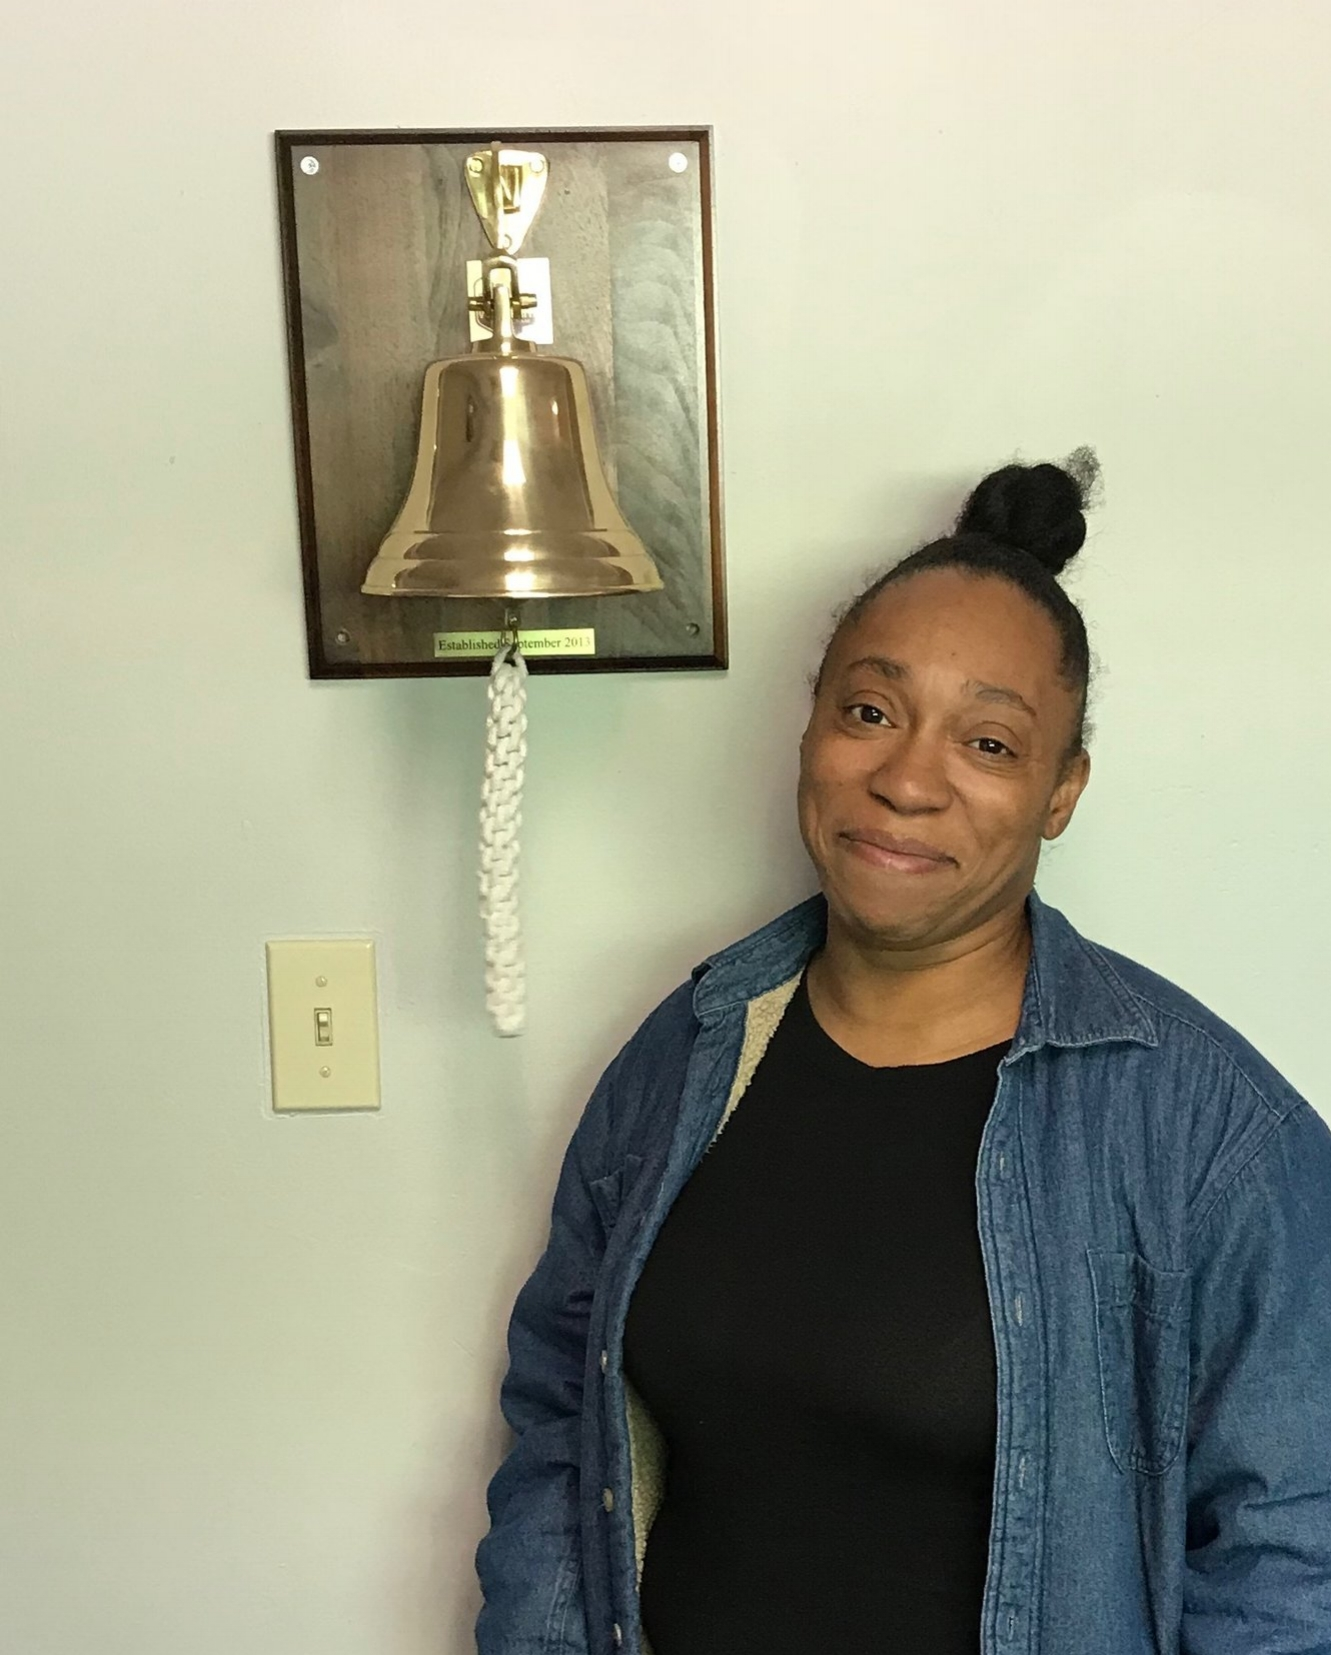 Tolandria came by to ring the bell at WorkFaith, and to let us know about this great new opportunity!